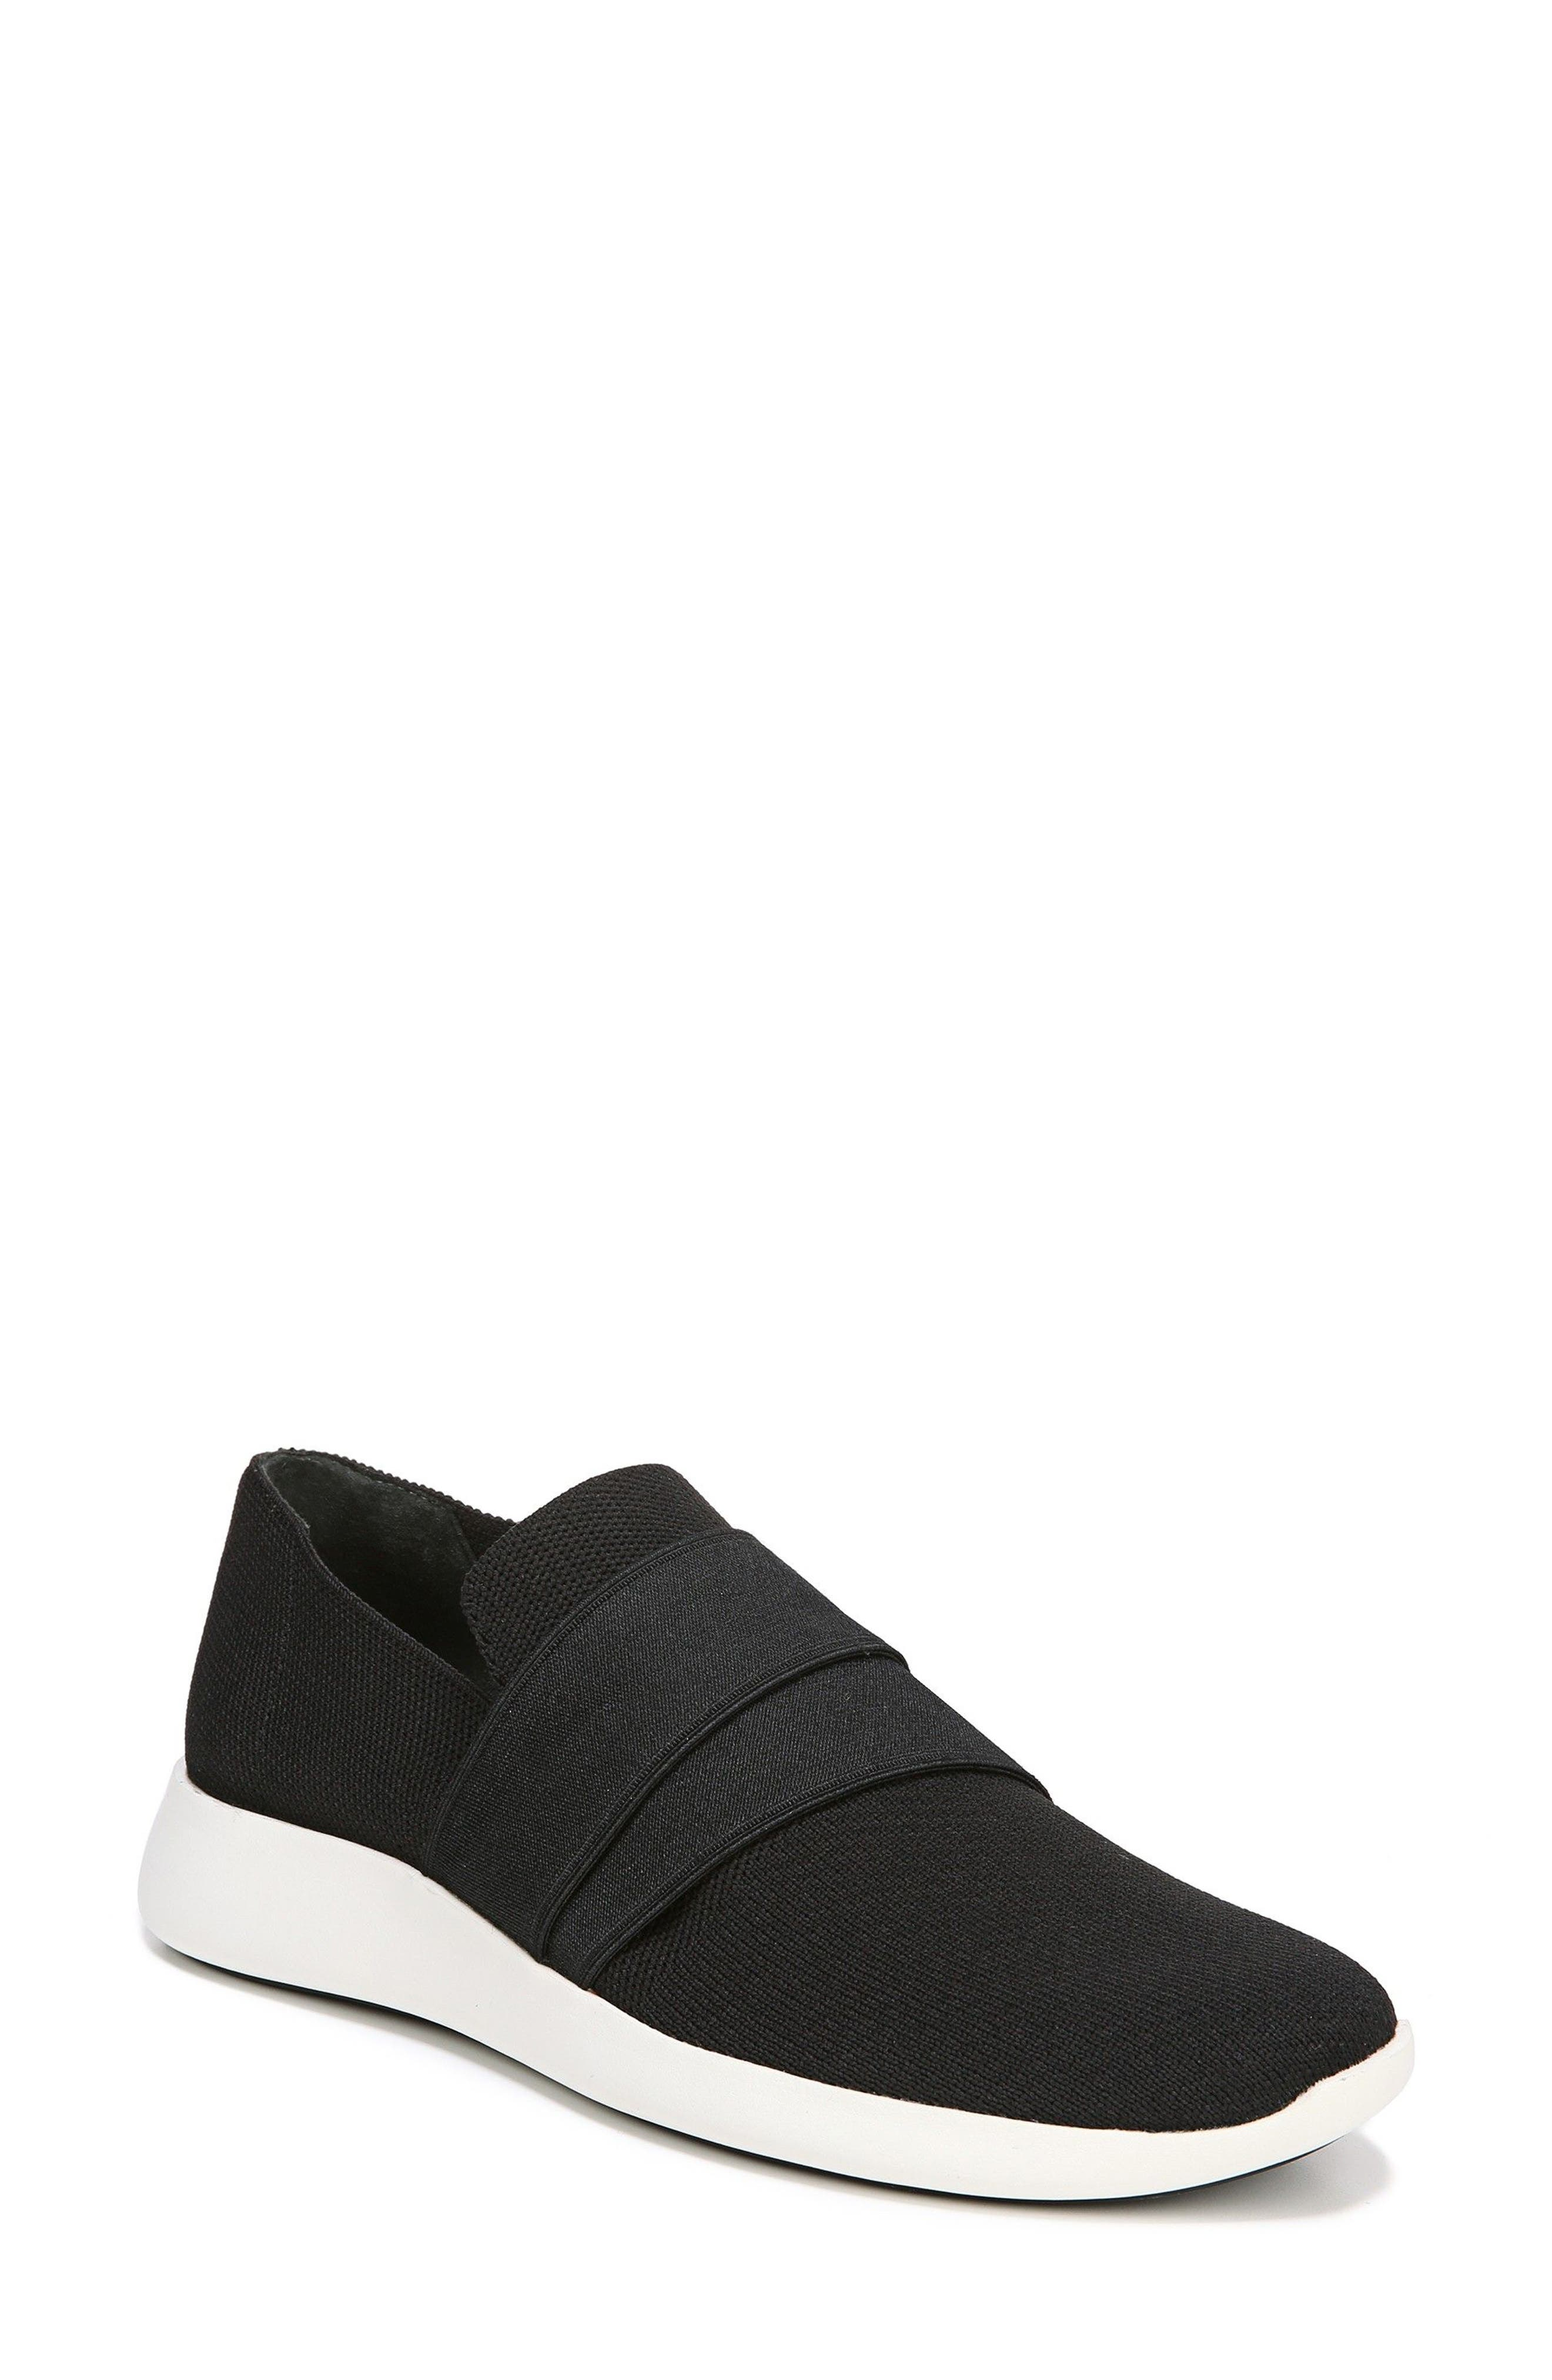 Aston Slip-On Sneaker,                             Main thumbnail 1, color,                             BLACK SOLID KNIT